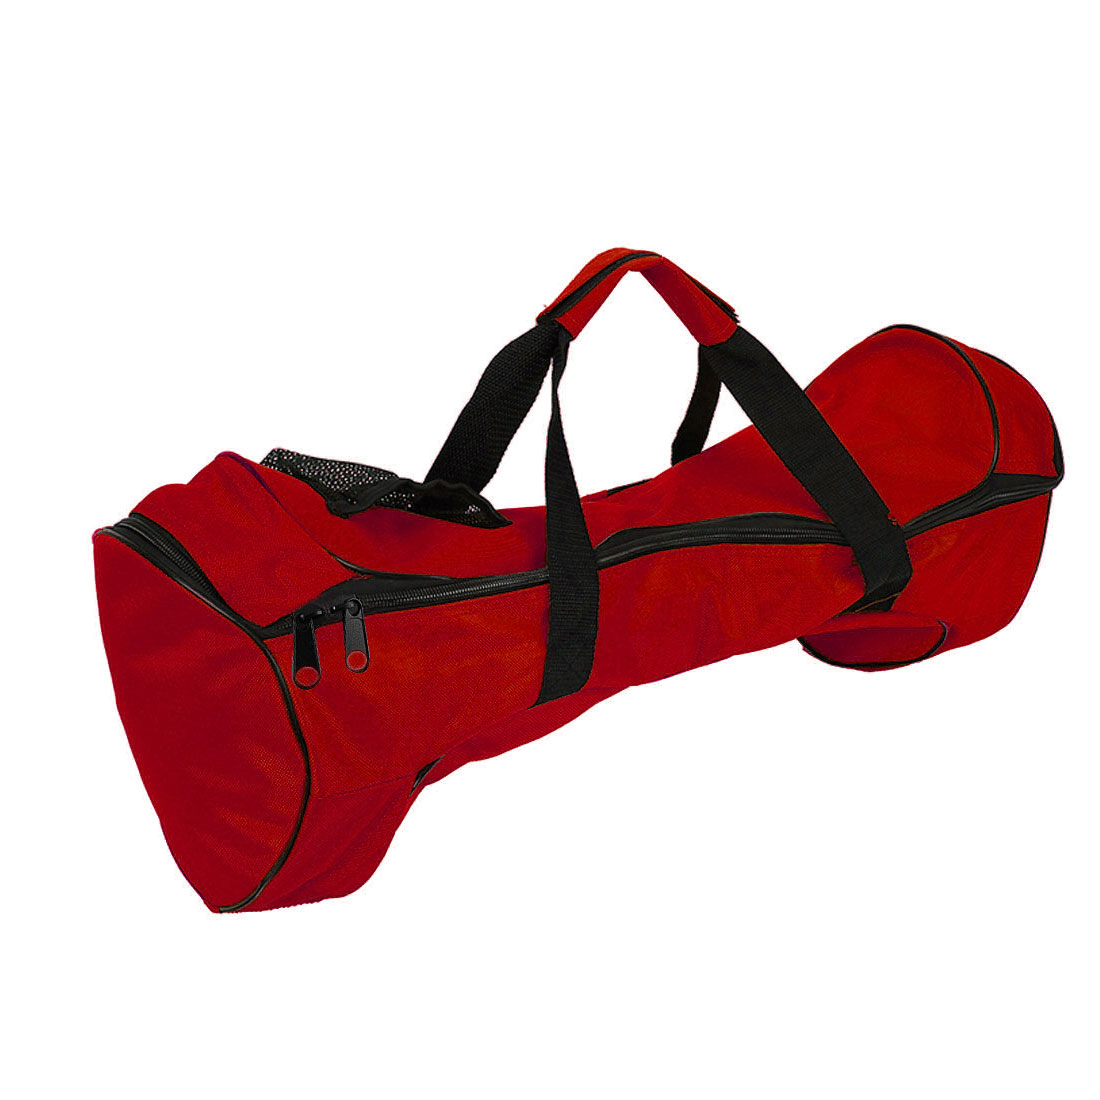 "Balancing Electric Scooter Case Carrying Bag Handbag Red for 4.5"" Wheels"